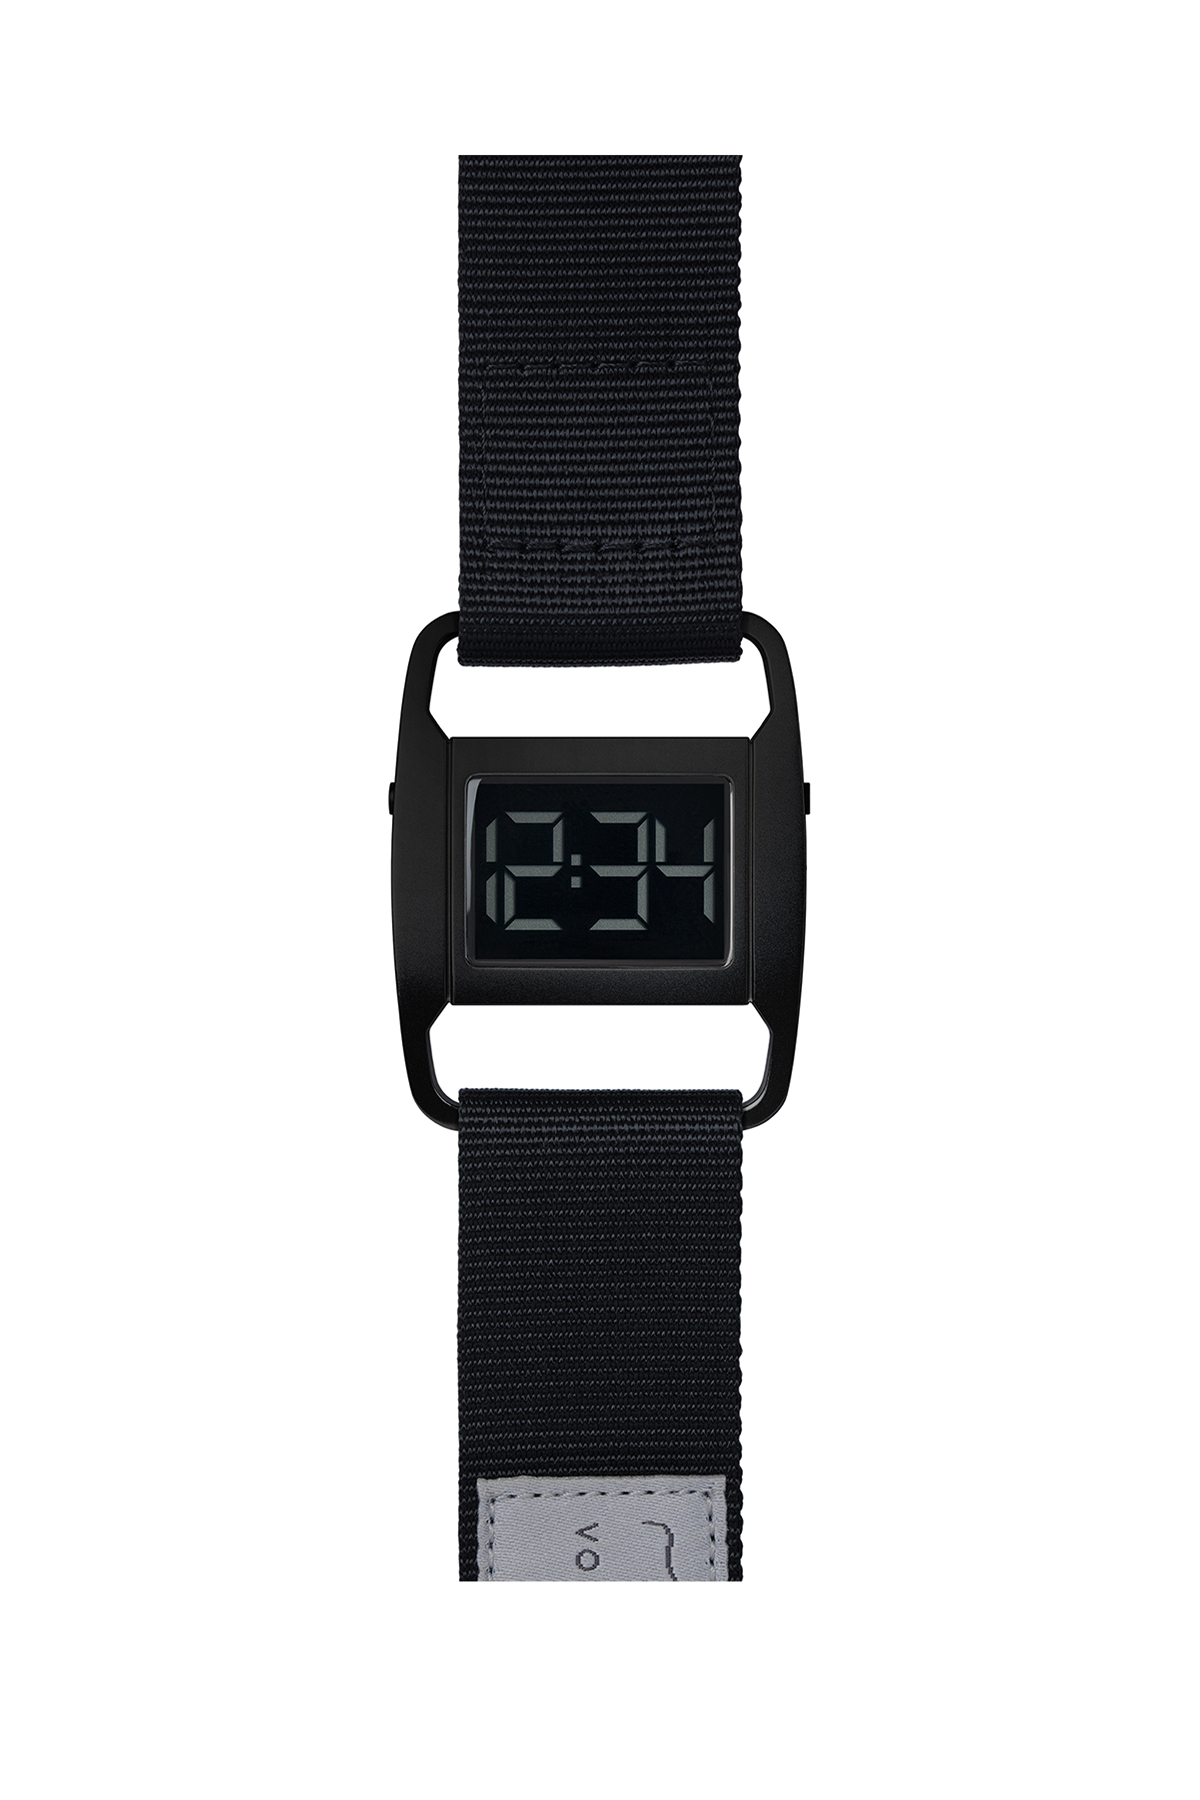 VOID WATCHES : PXR-5 (Black / Black)